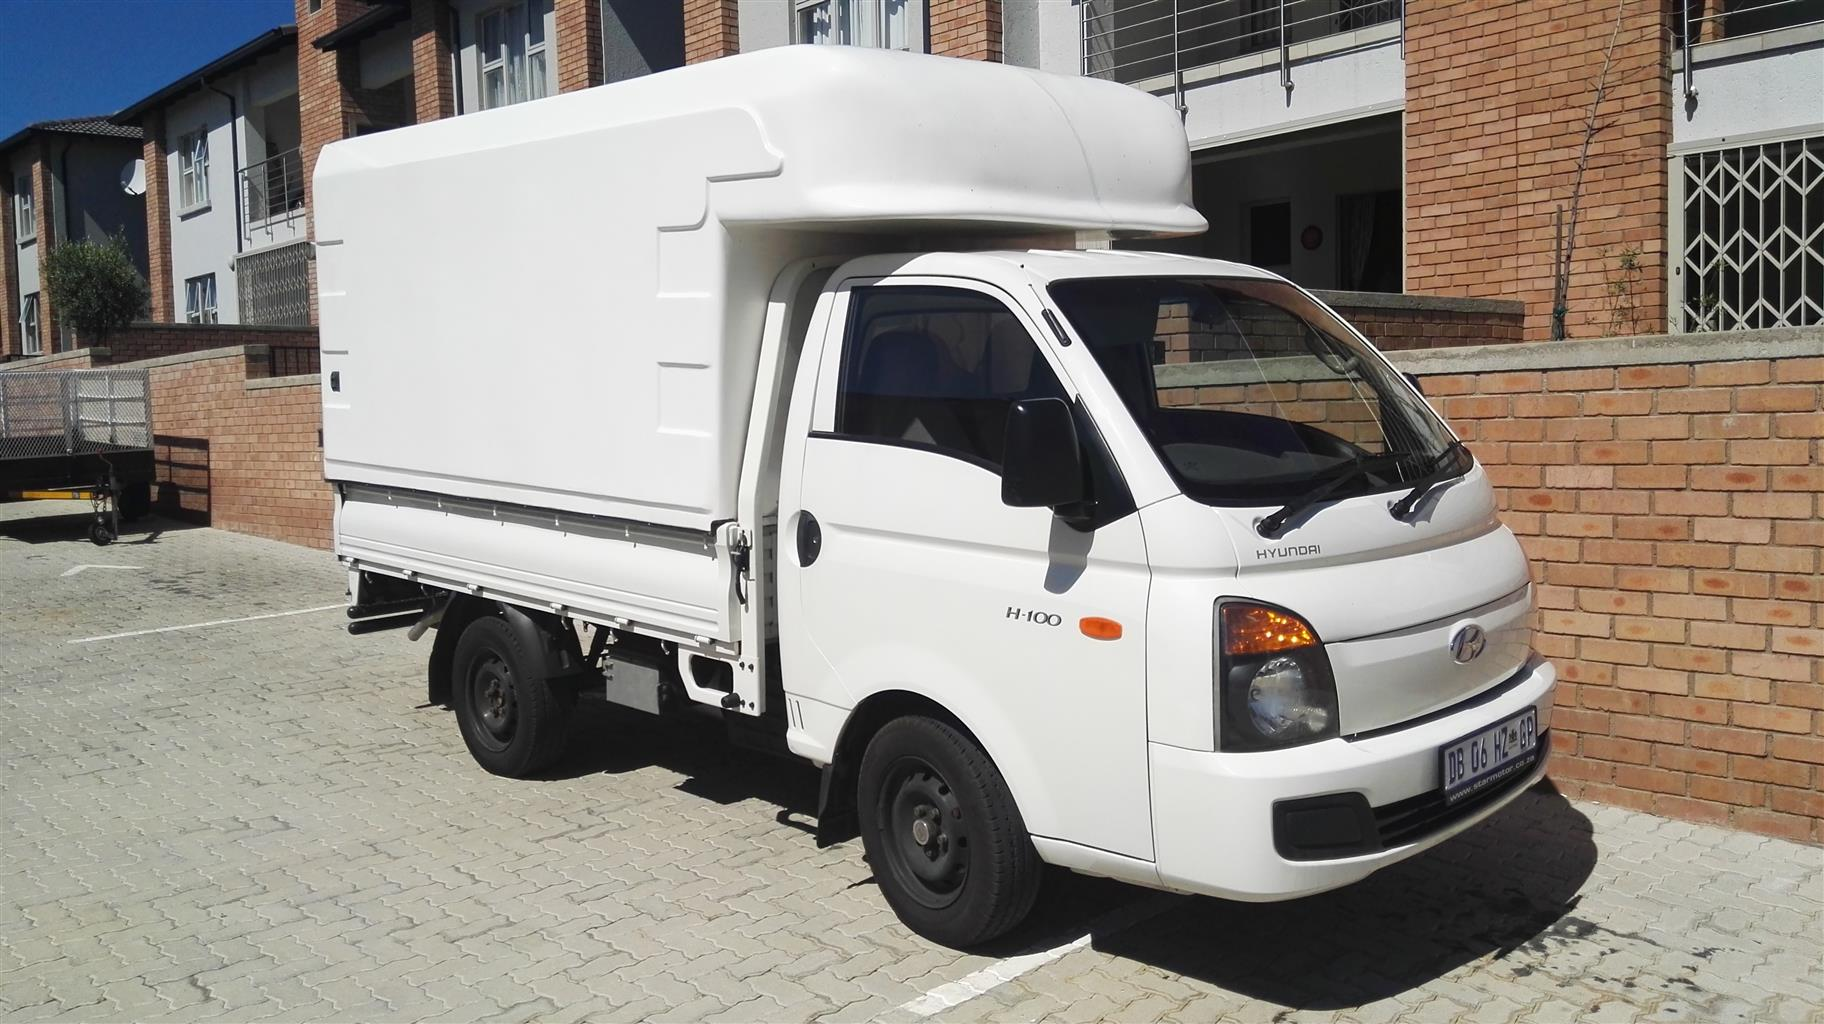 FURNITURE REMOVALS, BAKKIE HIRE TRANSPORT IN AND AROUND MIDRAND: 0729358143; 0645421126; 0737939169